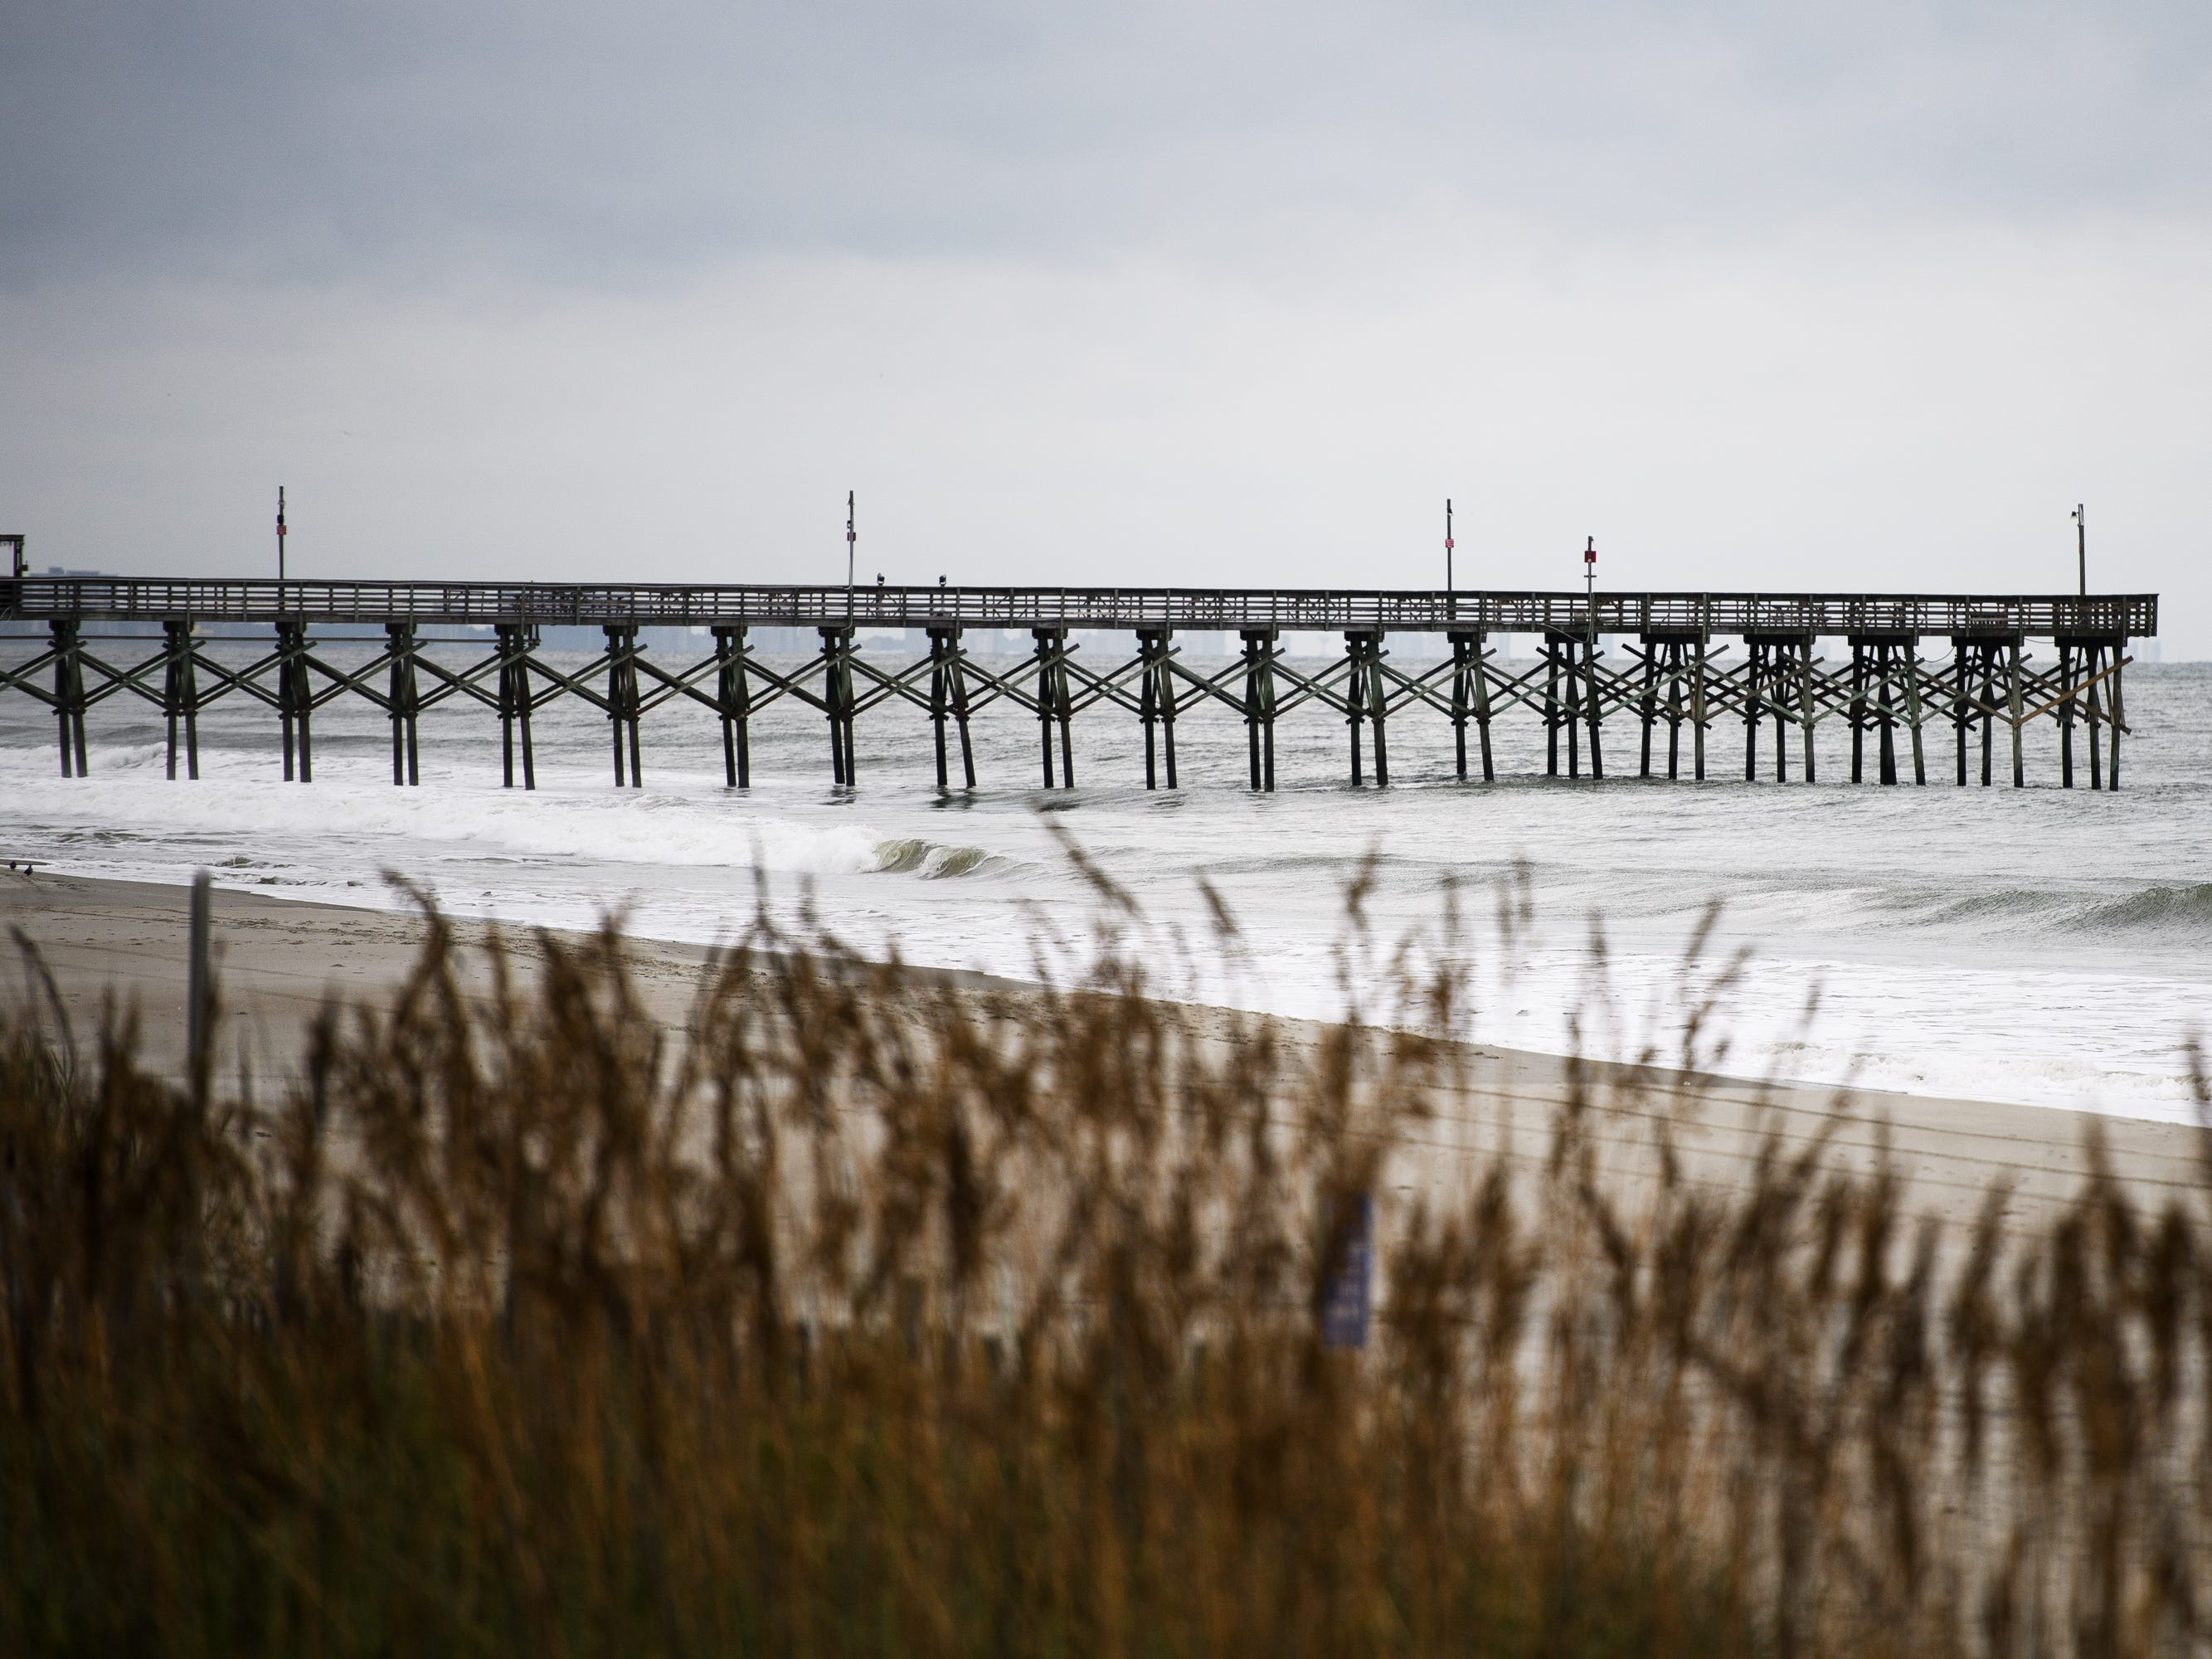 The pier at the Myrtle Beach Boardwalk and Promenade on Thursday, Sept. 13, 2018 before Hurricane Florence's arrival.